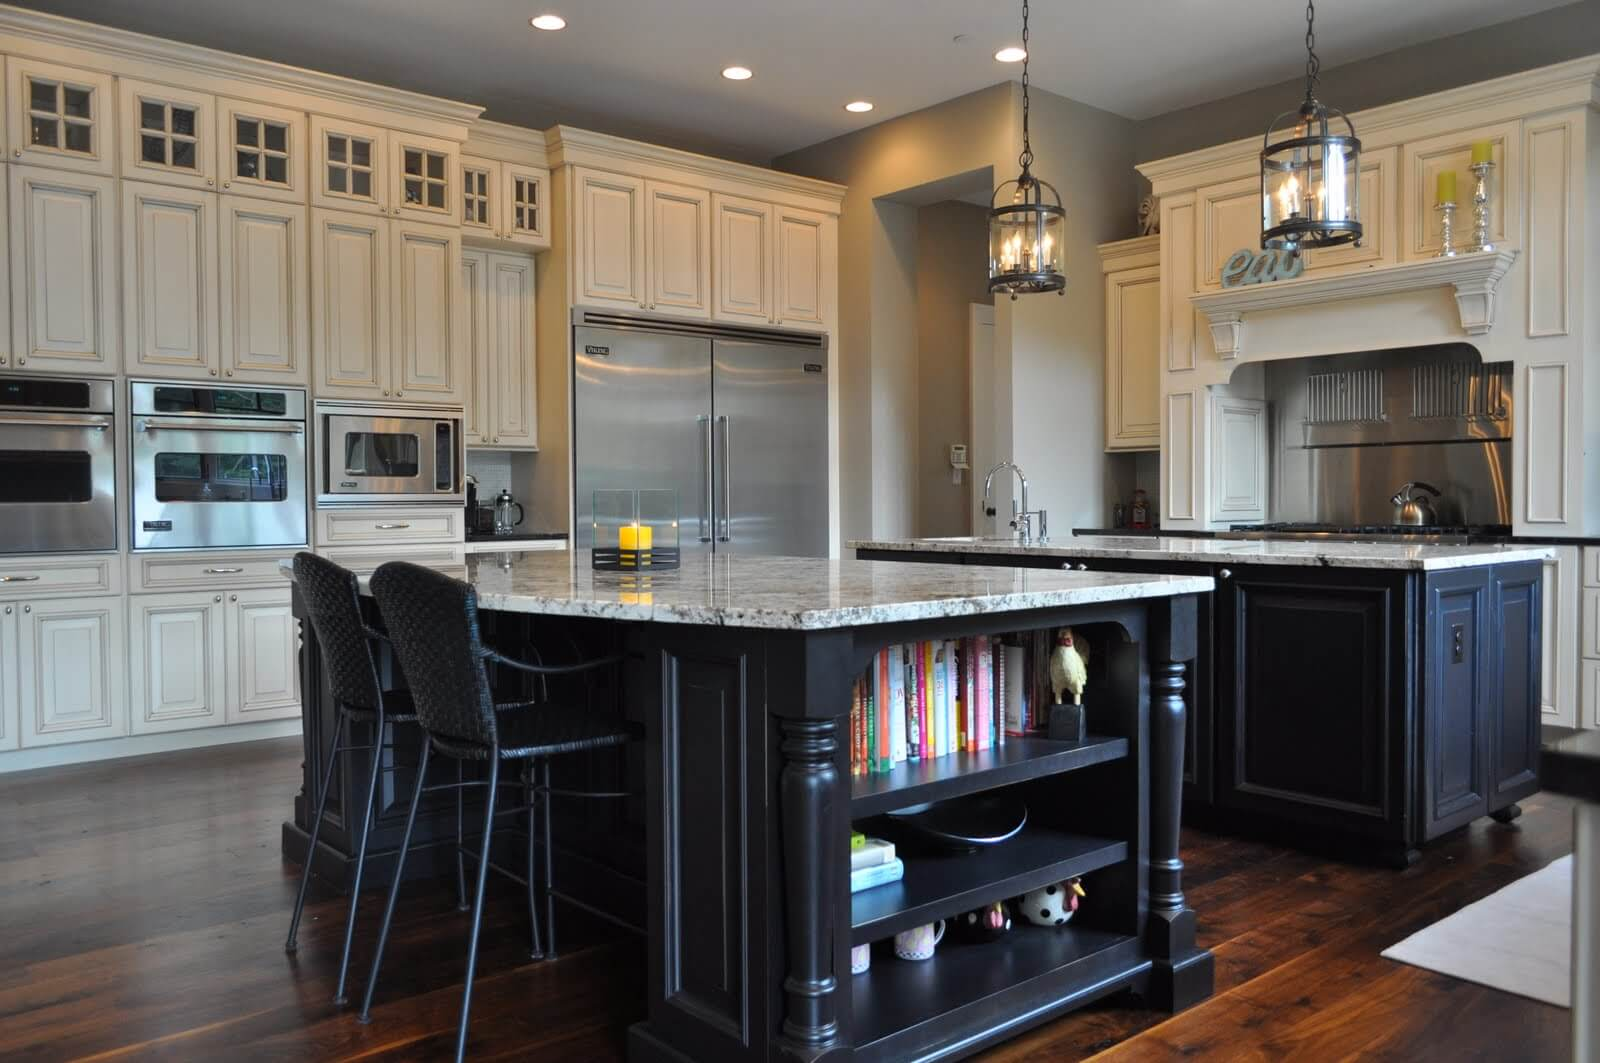 kitchen island chairs foldable cart 124 43 great design and ideas with cabinets islands